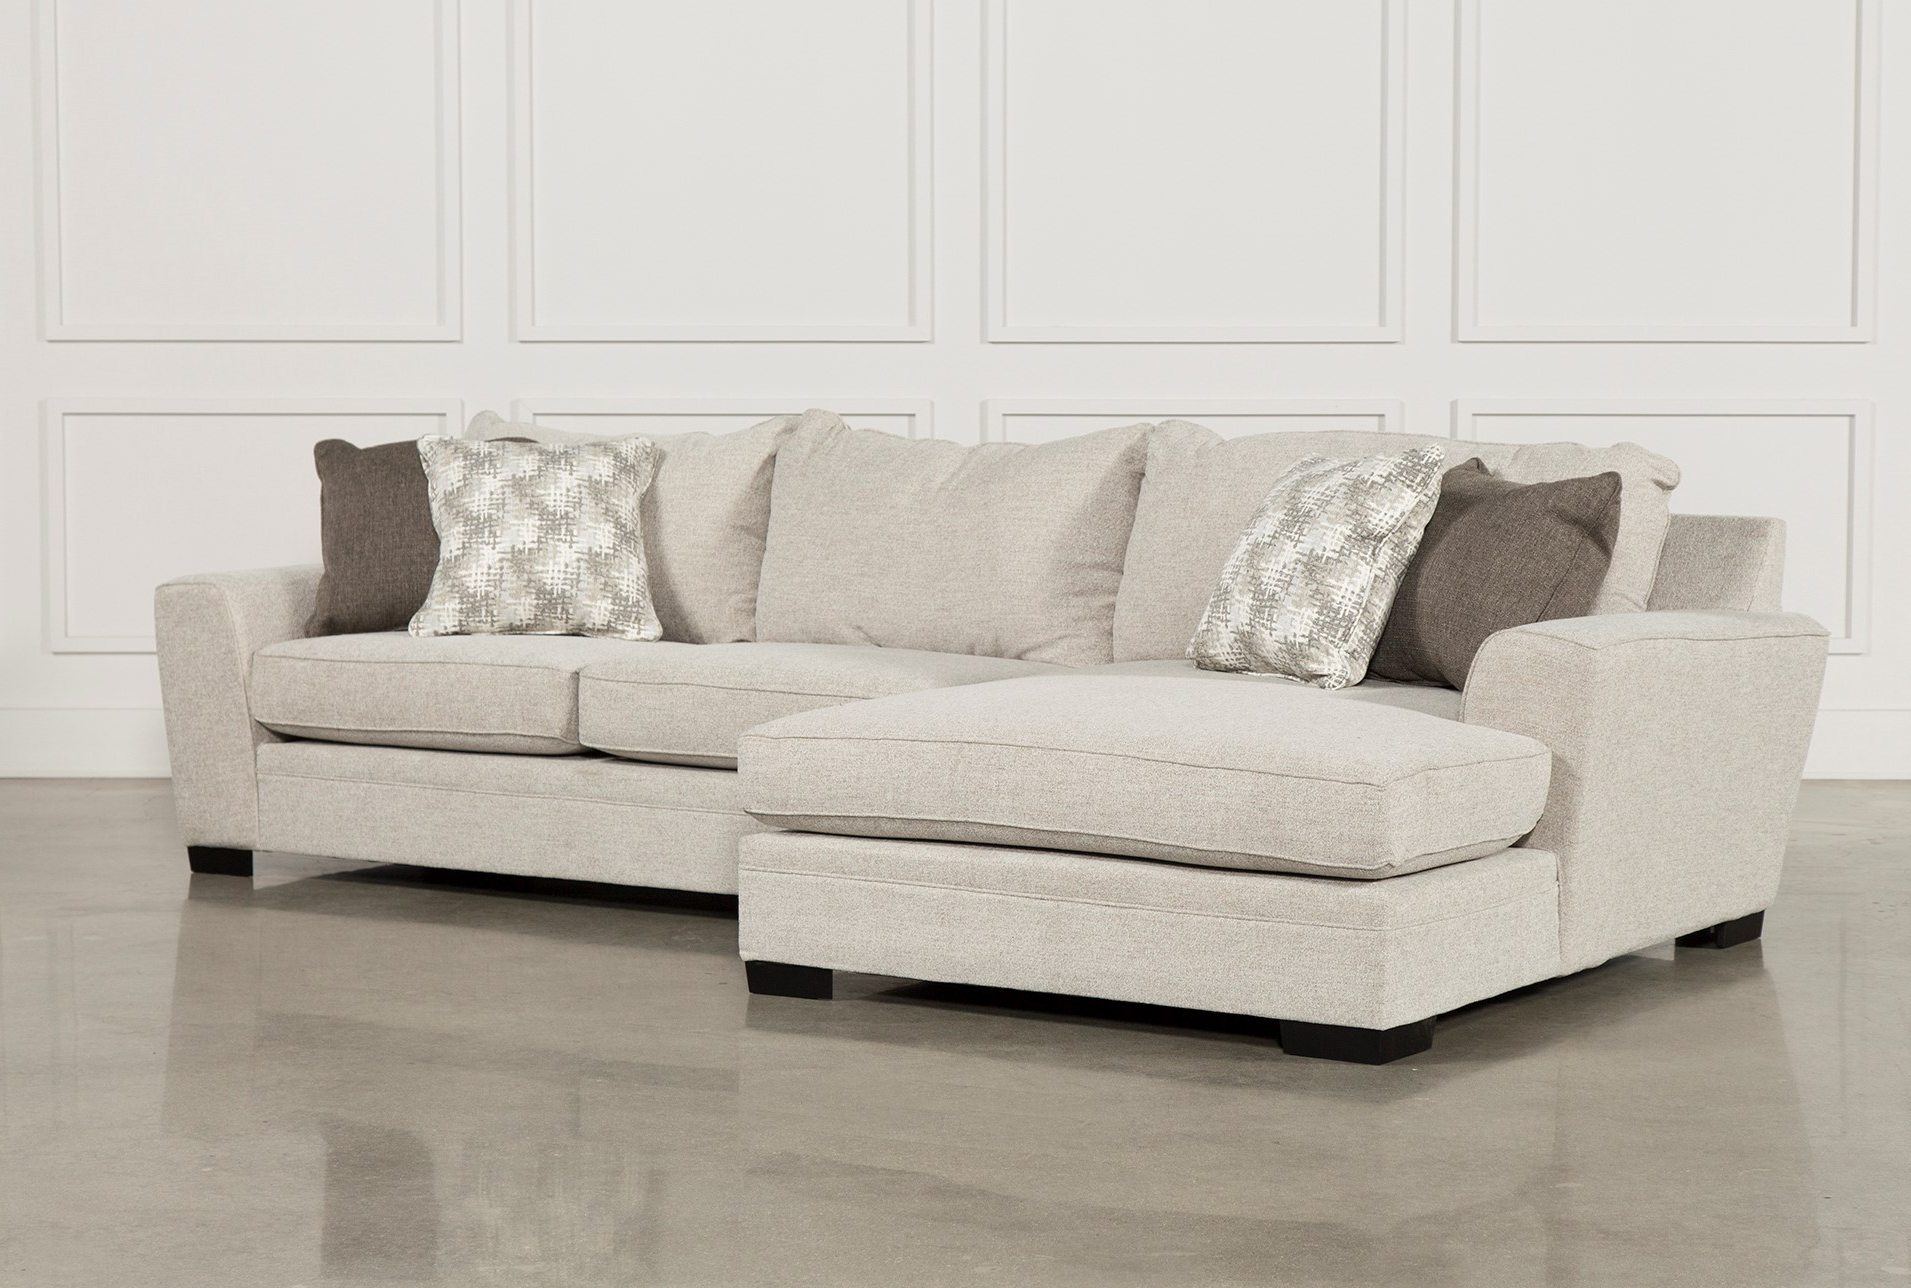 2 Piece Sectional With Chaise – Tidex With Regard To Current Avery 2 Piece Sectionals With Laf Armless Chaise (Gallery 7 of 20)